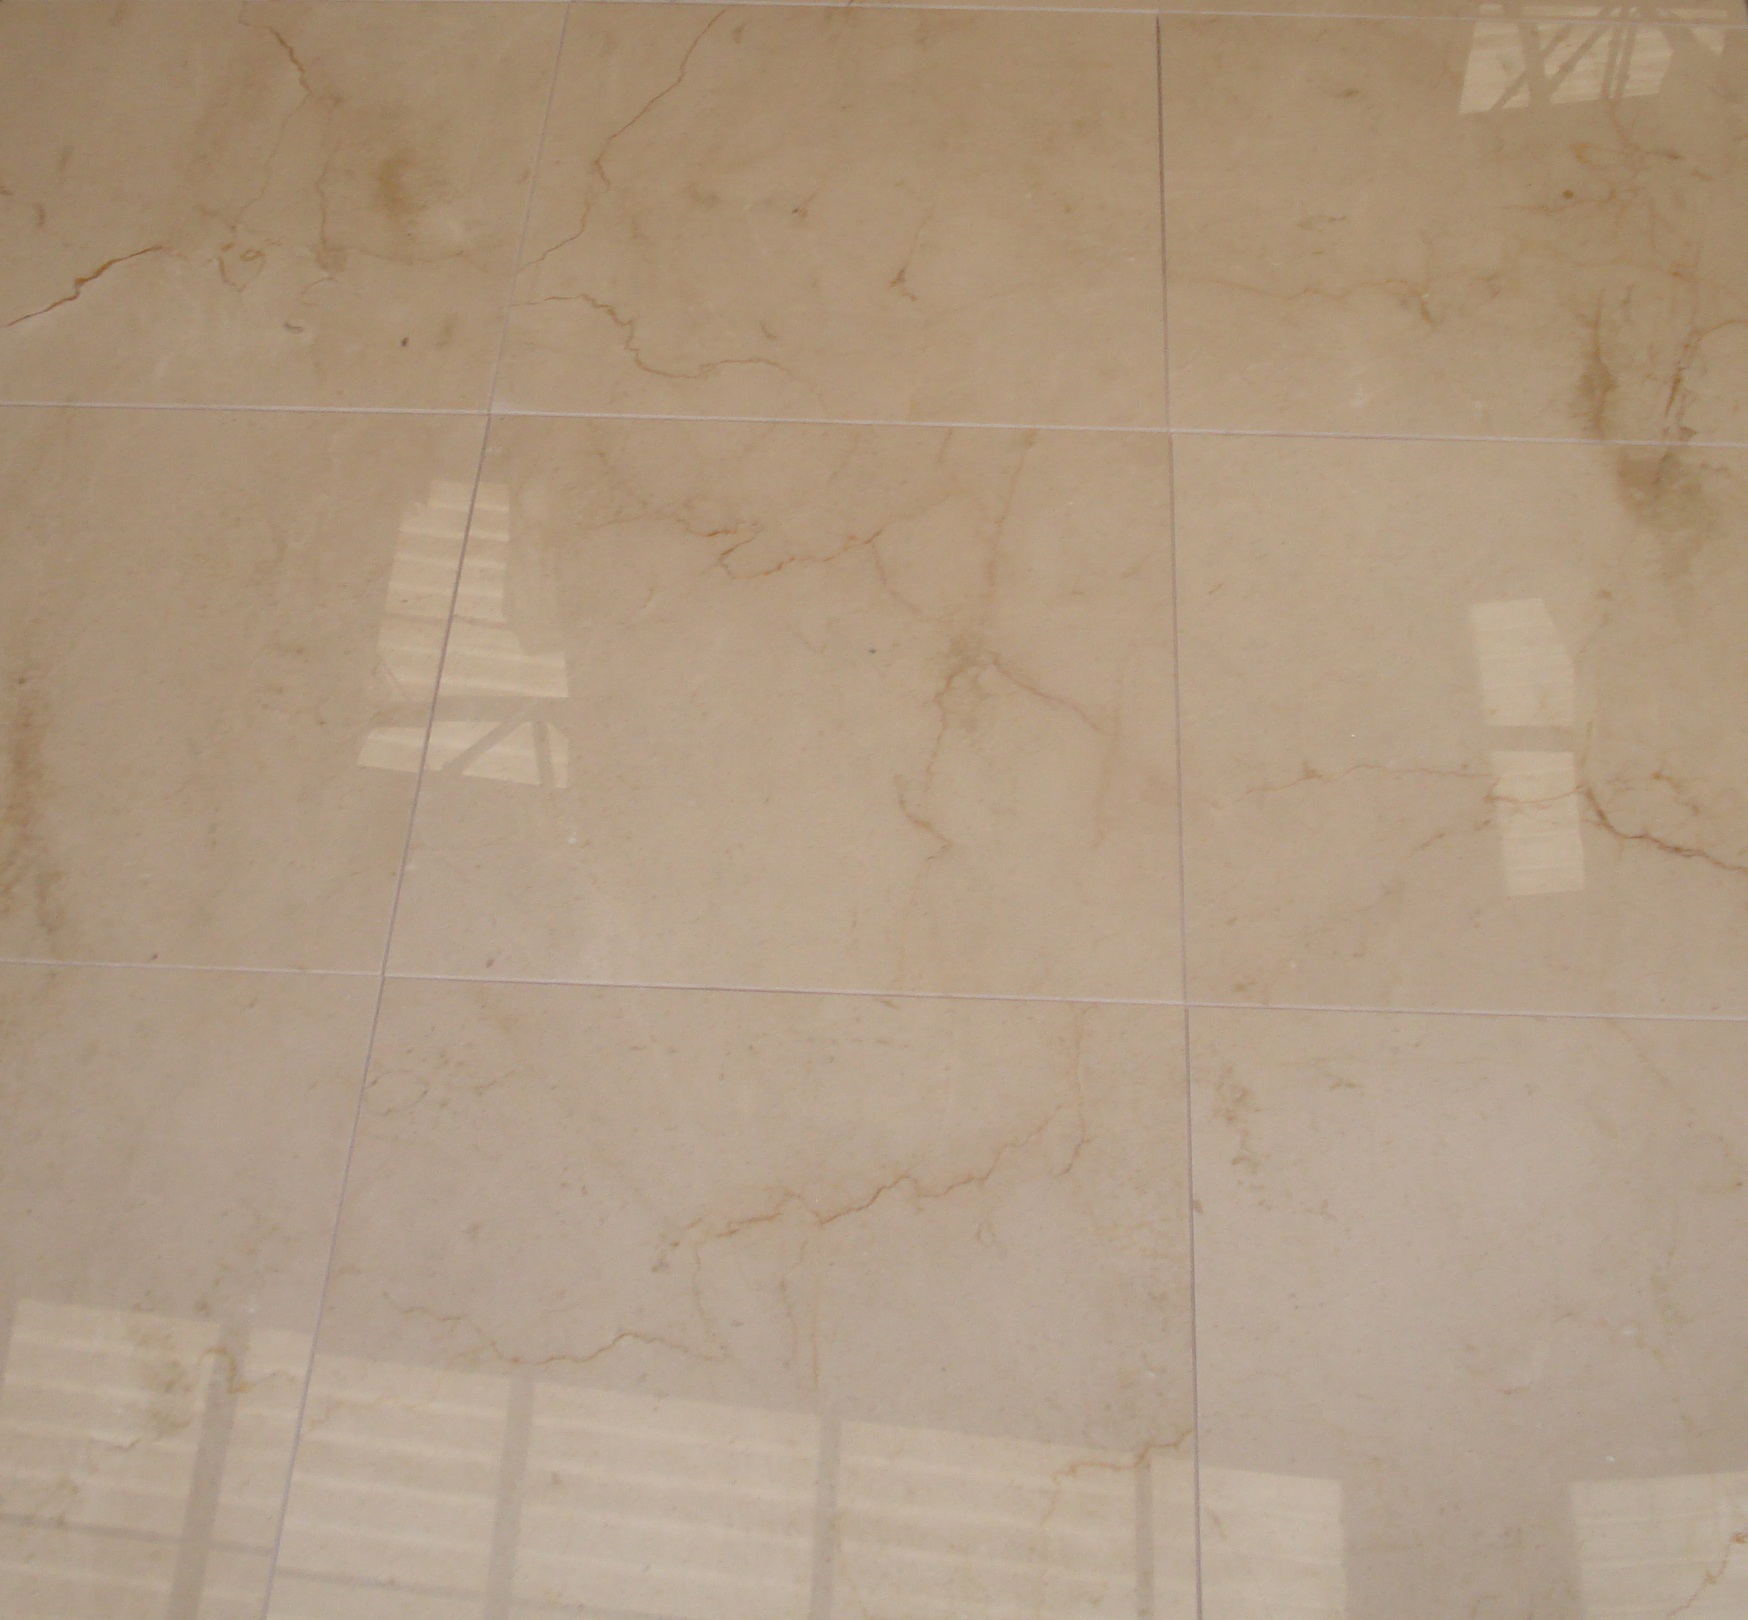 Crema Marfil Marble : Crema marfil marble wholesale supplier